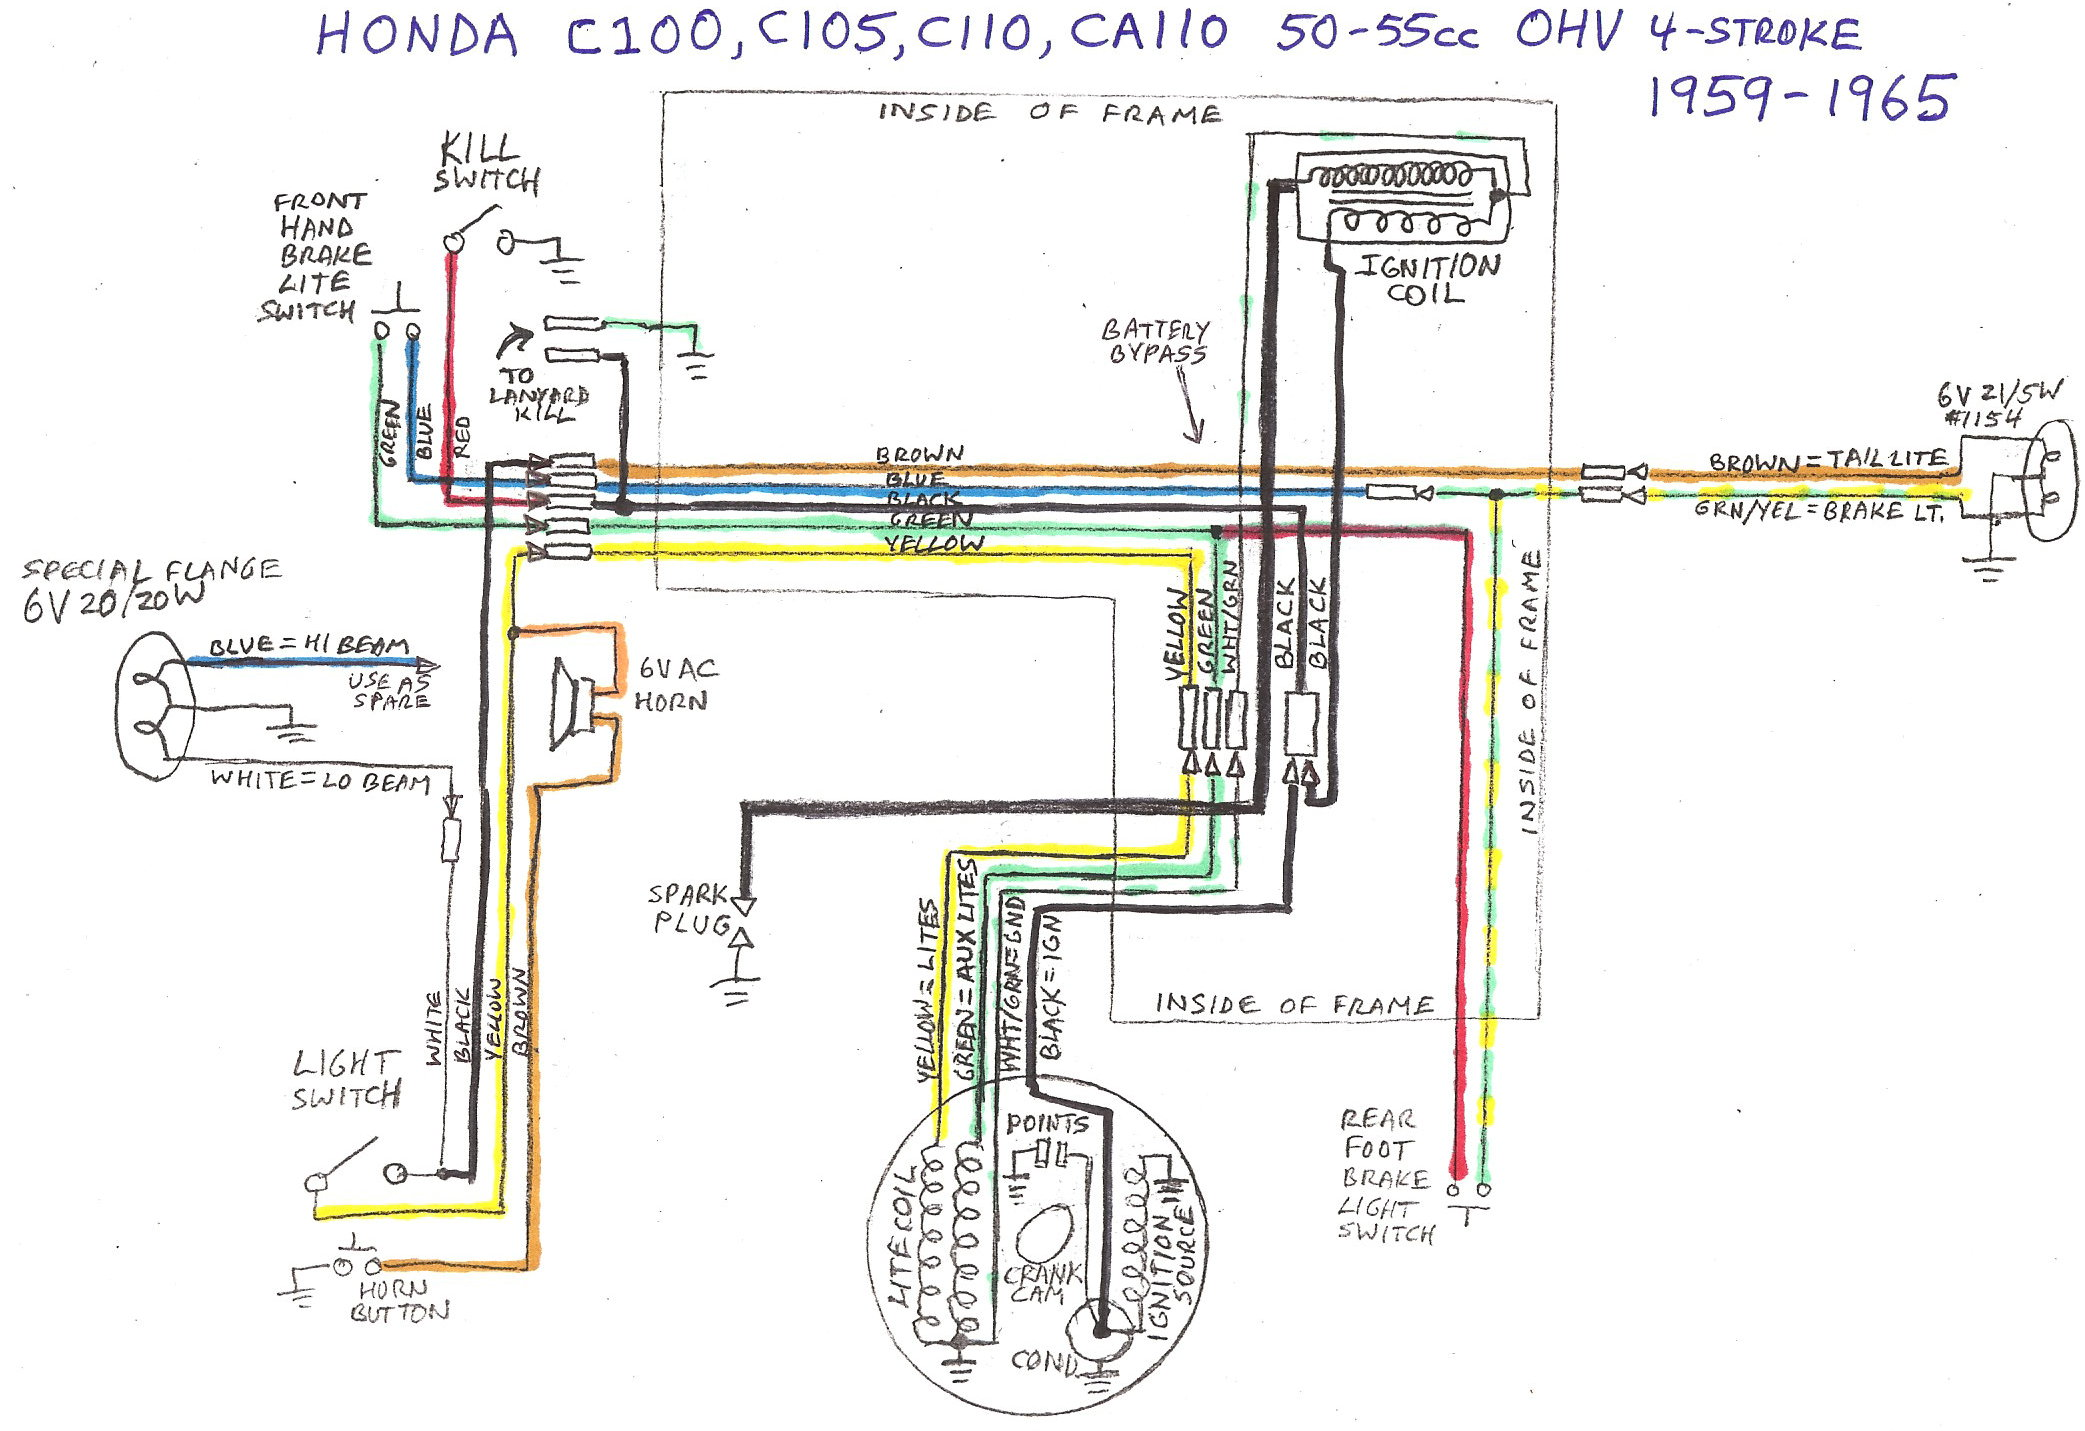 i m putting a 1960 honda 50 c100 back together and can not figure rh  justanswer com honda 50 c100 wiring diagram honda c100 wiring diagram